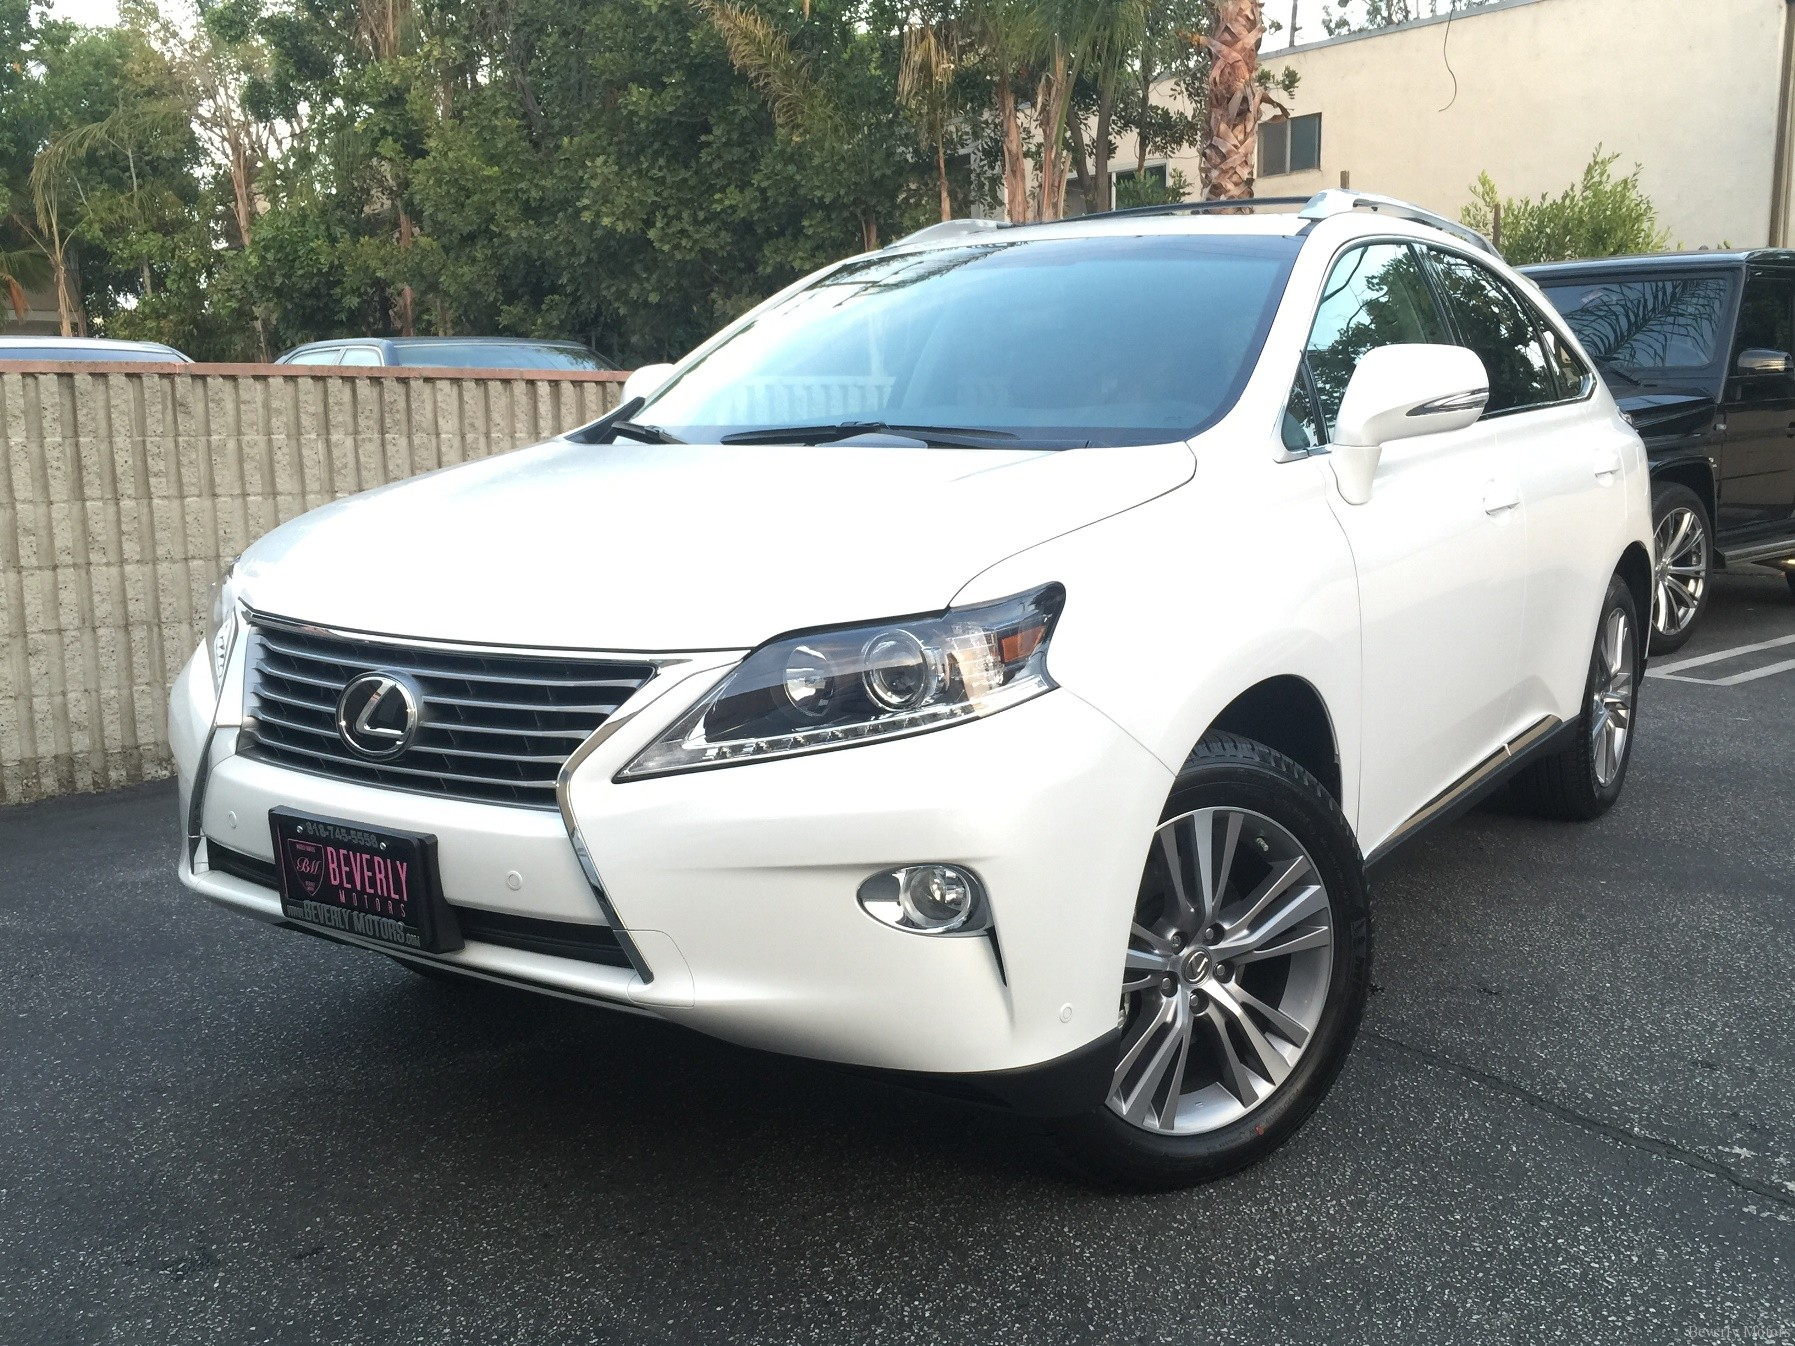 2014 Lexus GS 350 Beverly Motors Inc Glendale Auto Leasing and